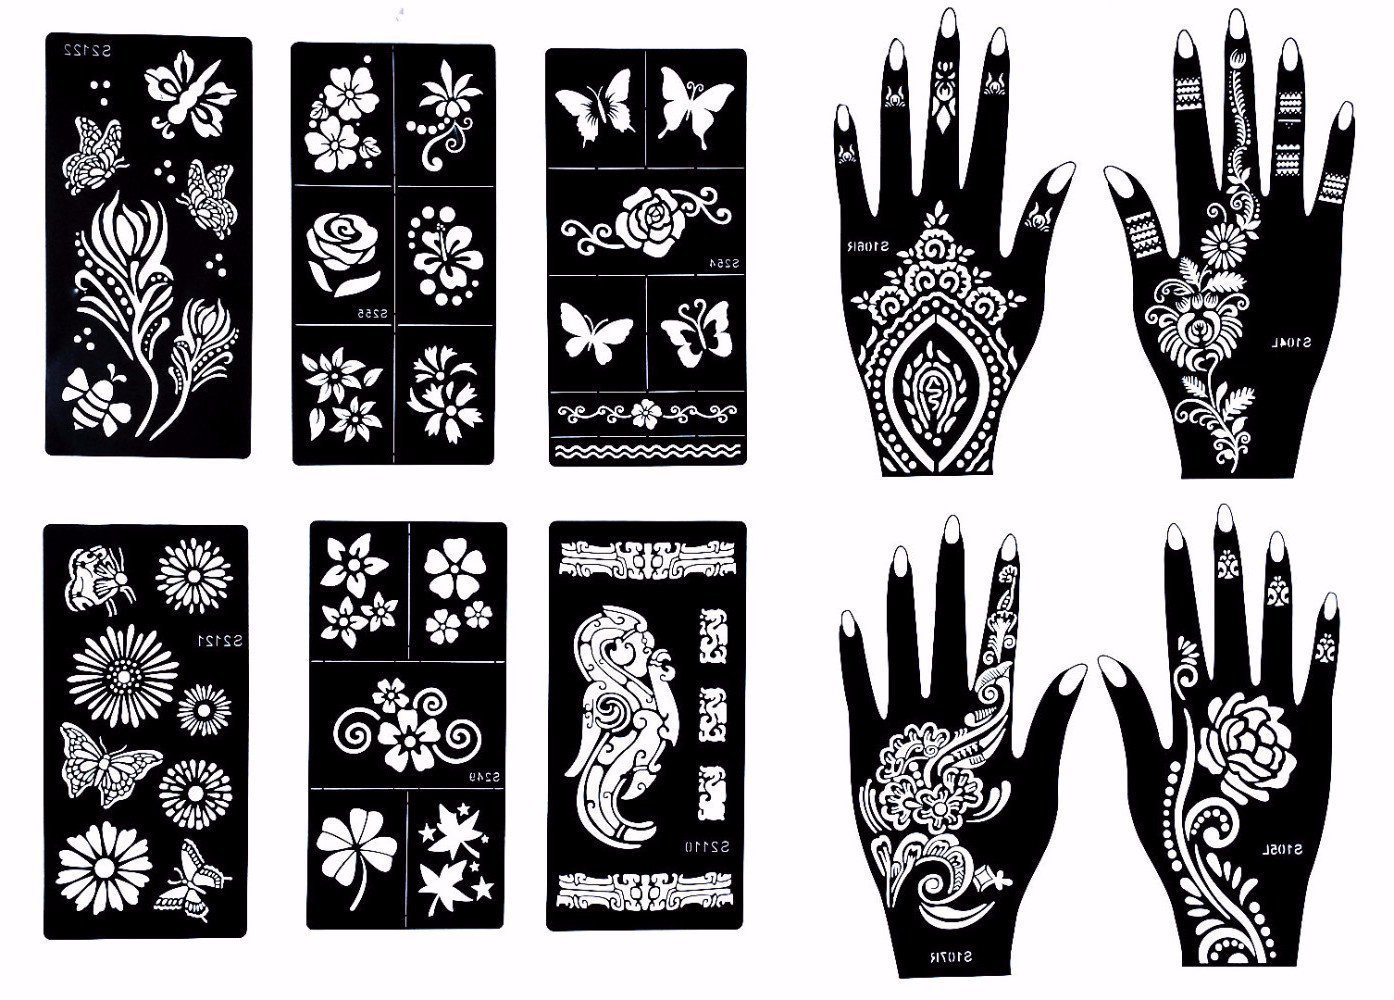 Stencils for henna tattoos 10 sheets self adhesive for Henna temporary tattoo stencils